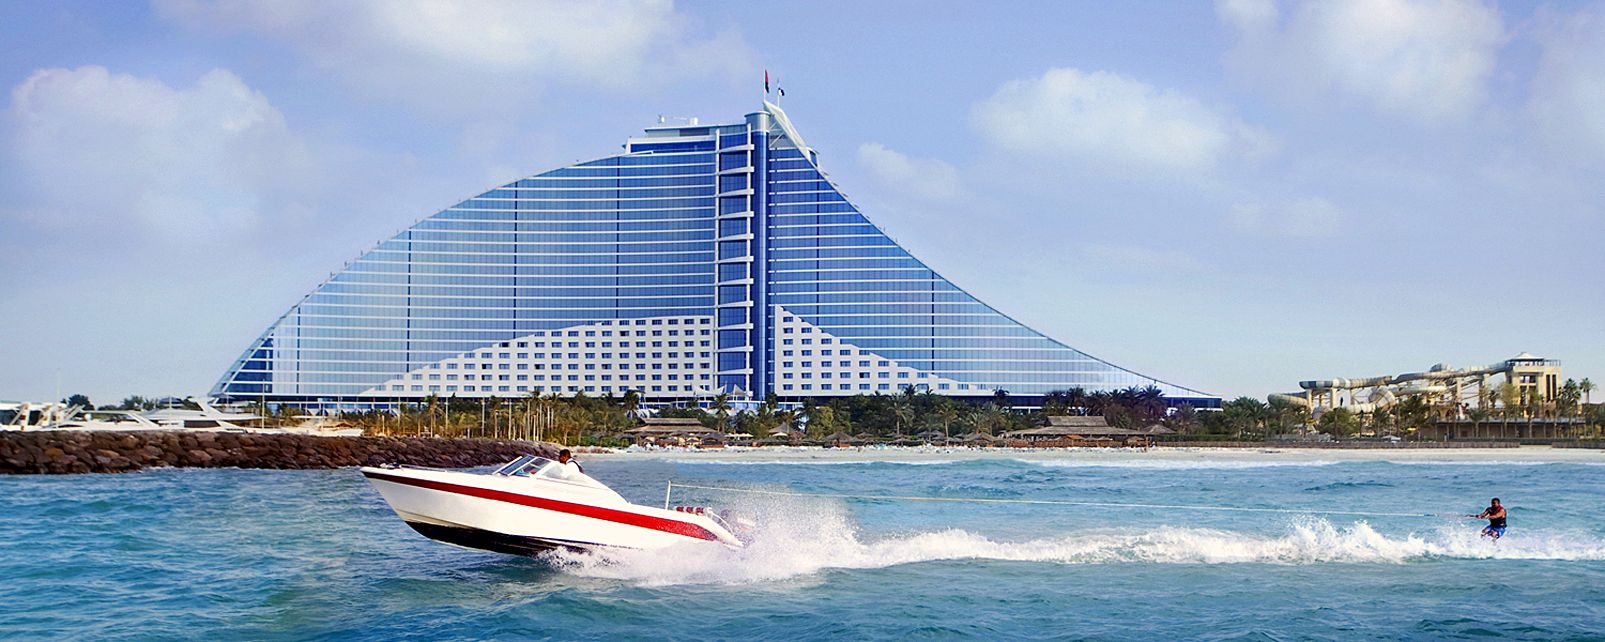 Hotel Jumeirah Beach Club